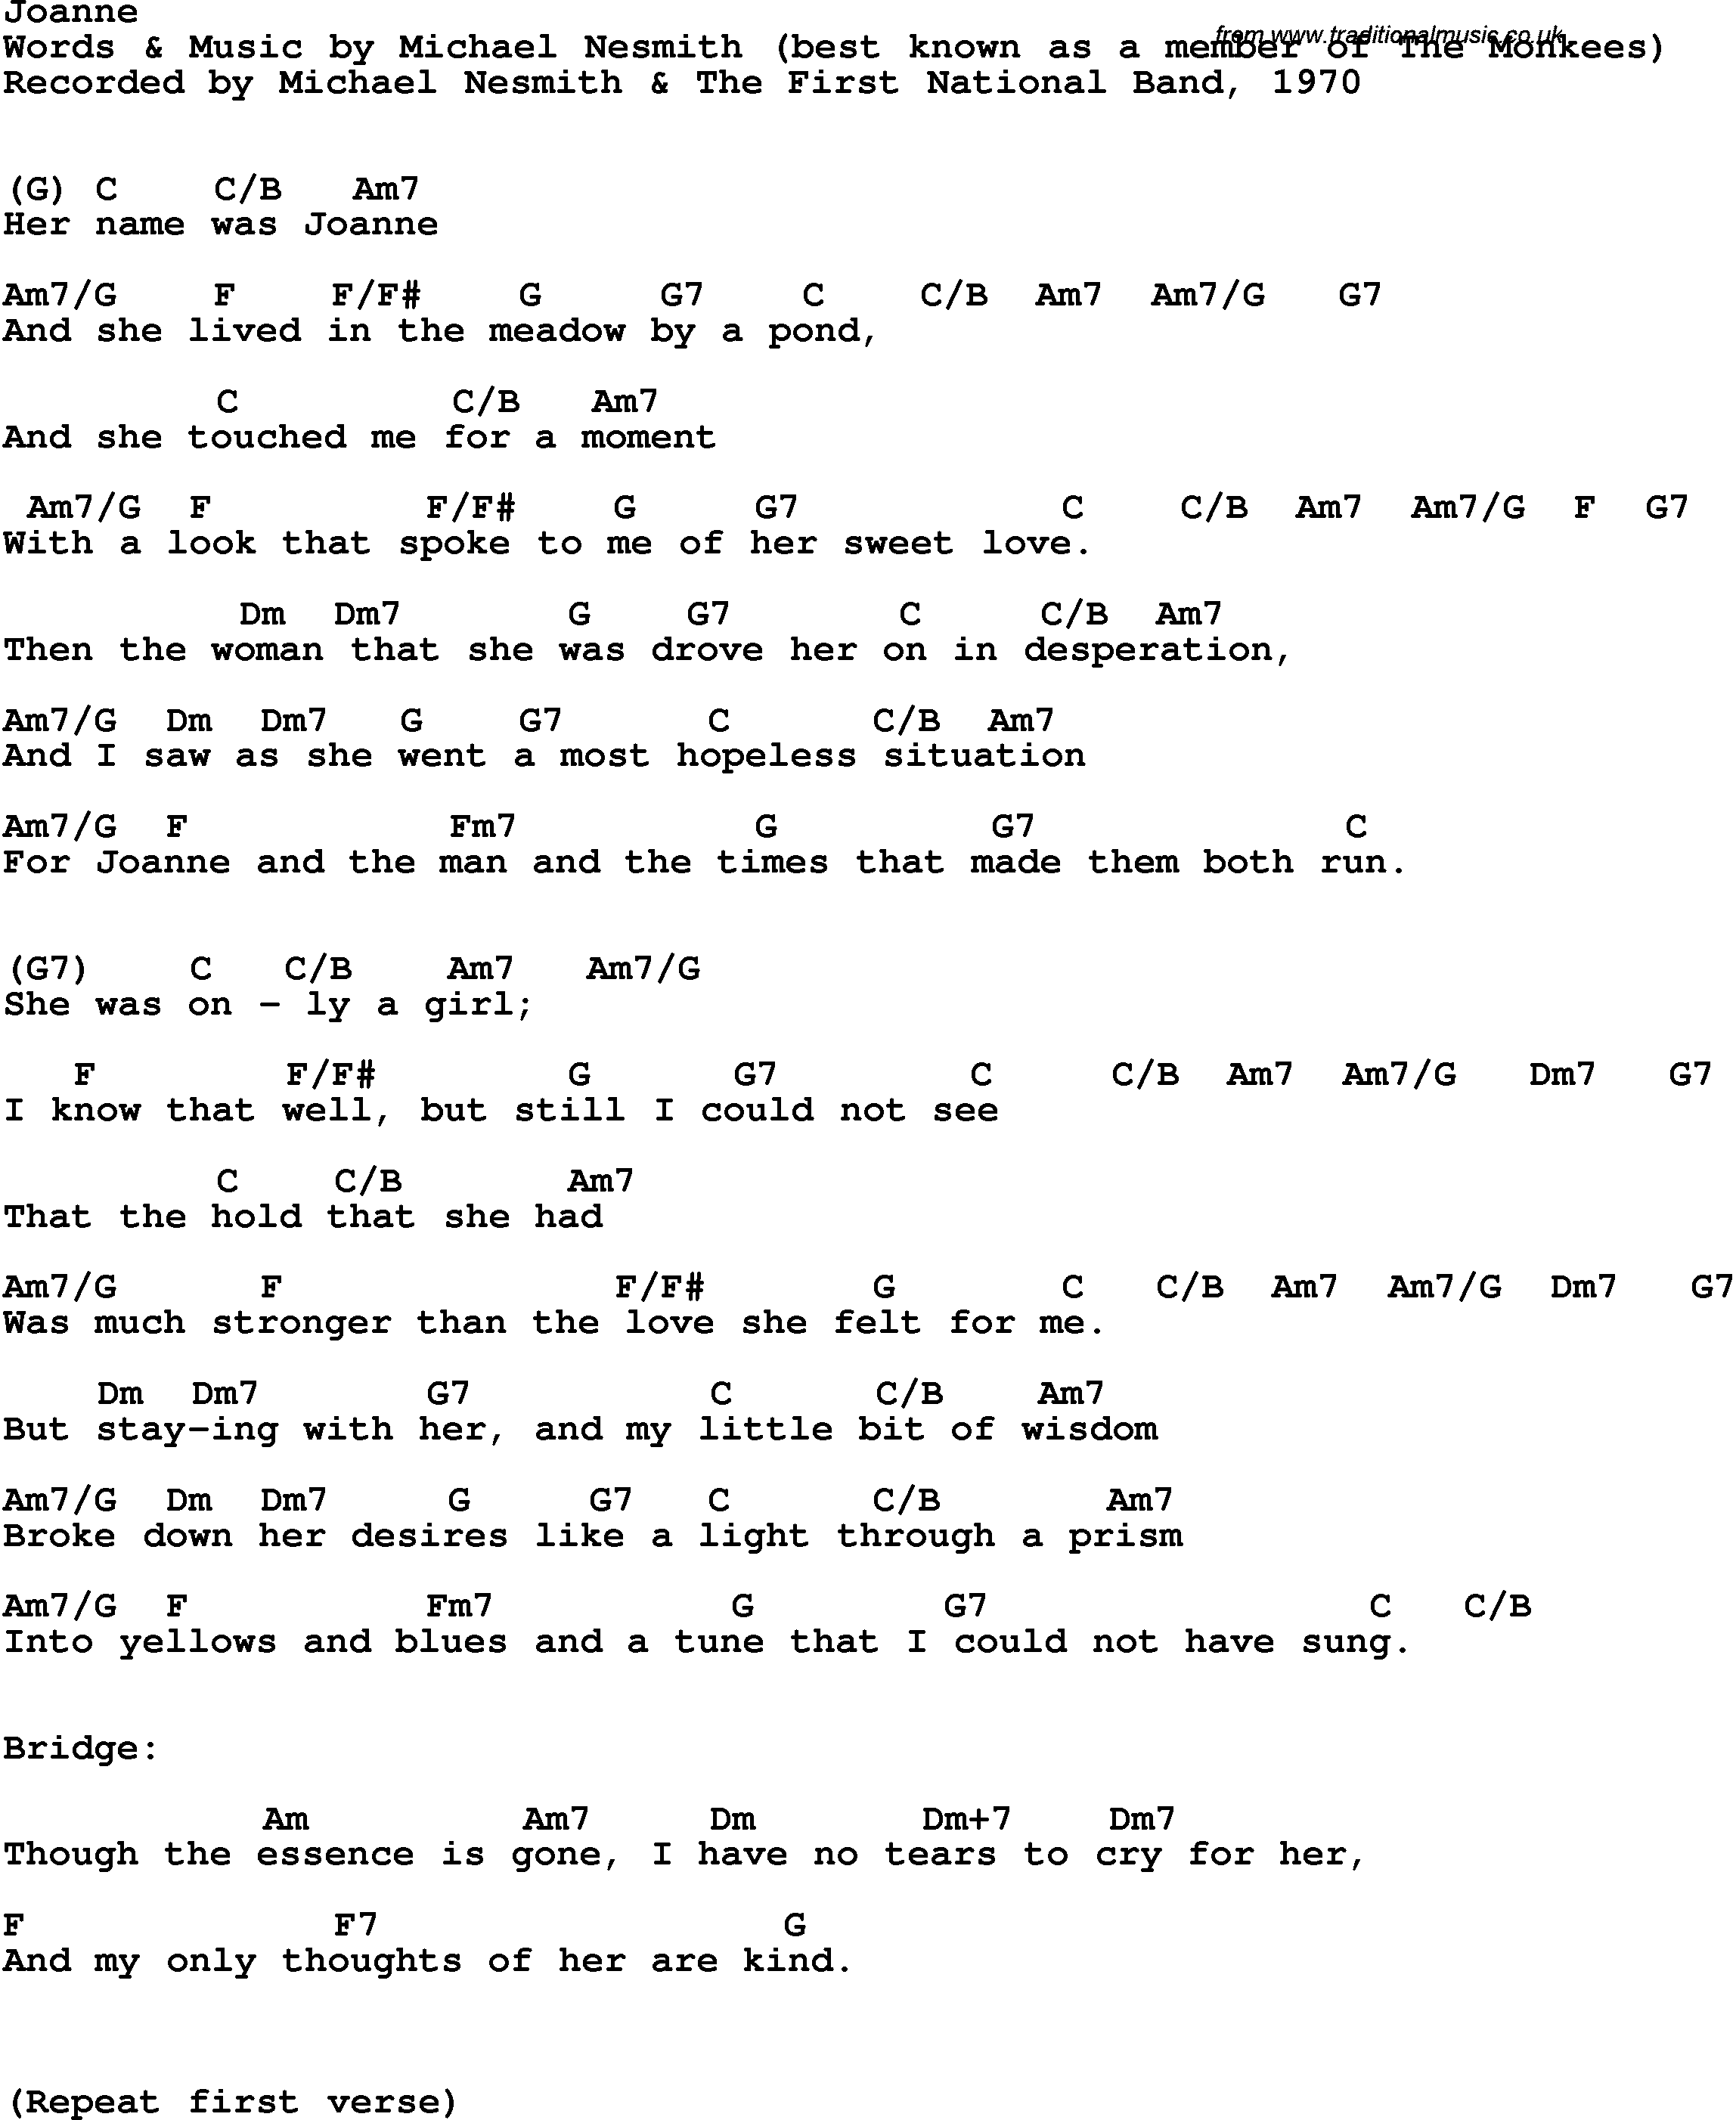 Song lyrics with guitar chords for joanne michael nesmith 1st song lyrics with guitar chords for joanne michael nesmith 1st national band 1970 hexwebz Image collections